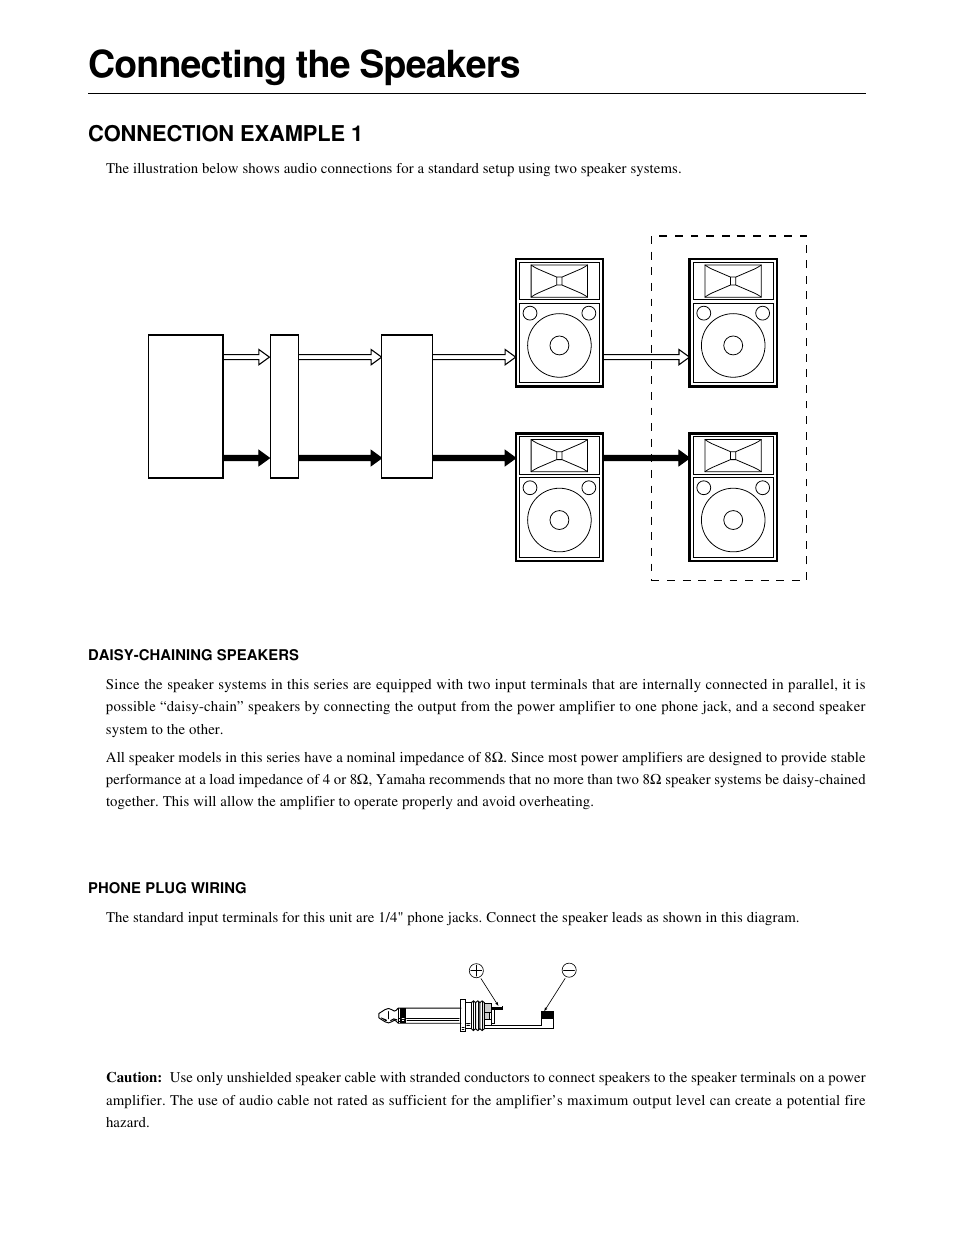 Speaker Input Terminal Diagram Connection Connecting The Speakers Example Yamaha Iva Oak User Manual Page 954x1235